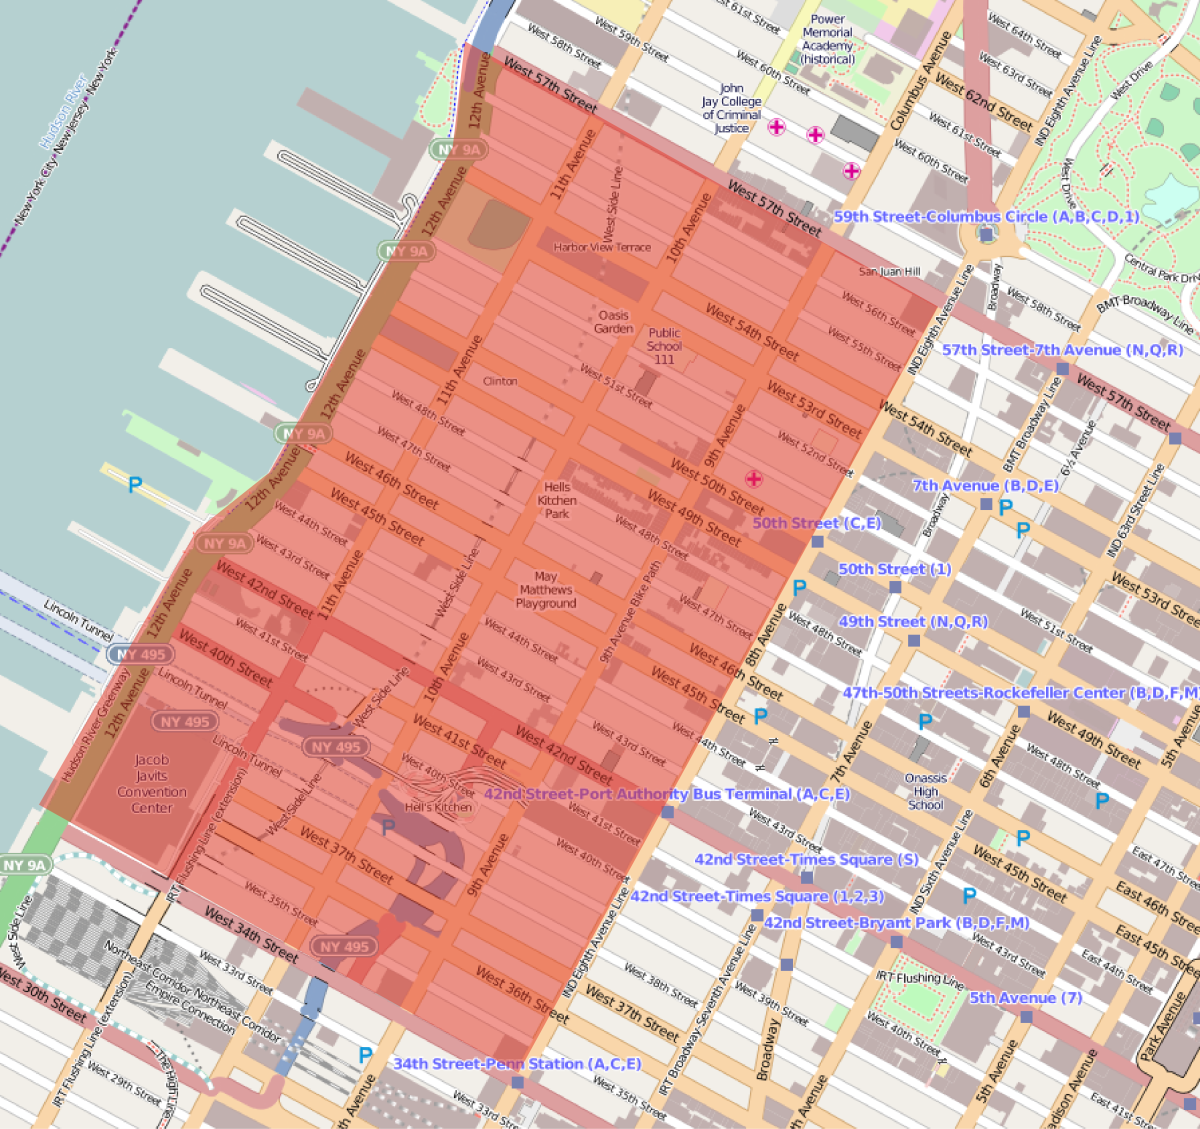 Location map of Hell's Kitchen in Manhattan.